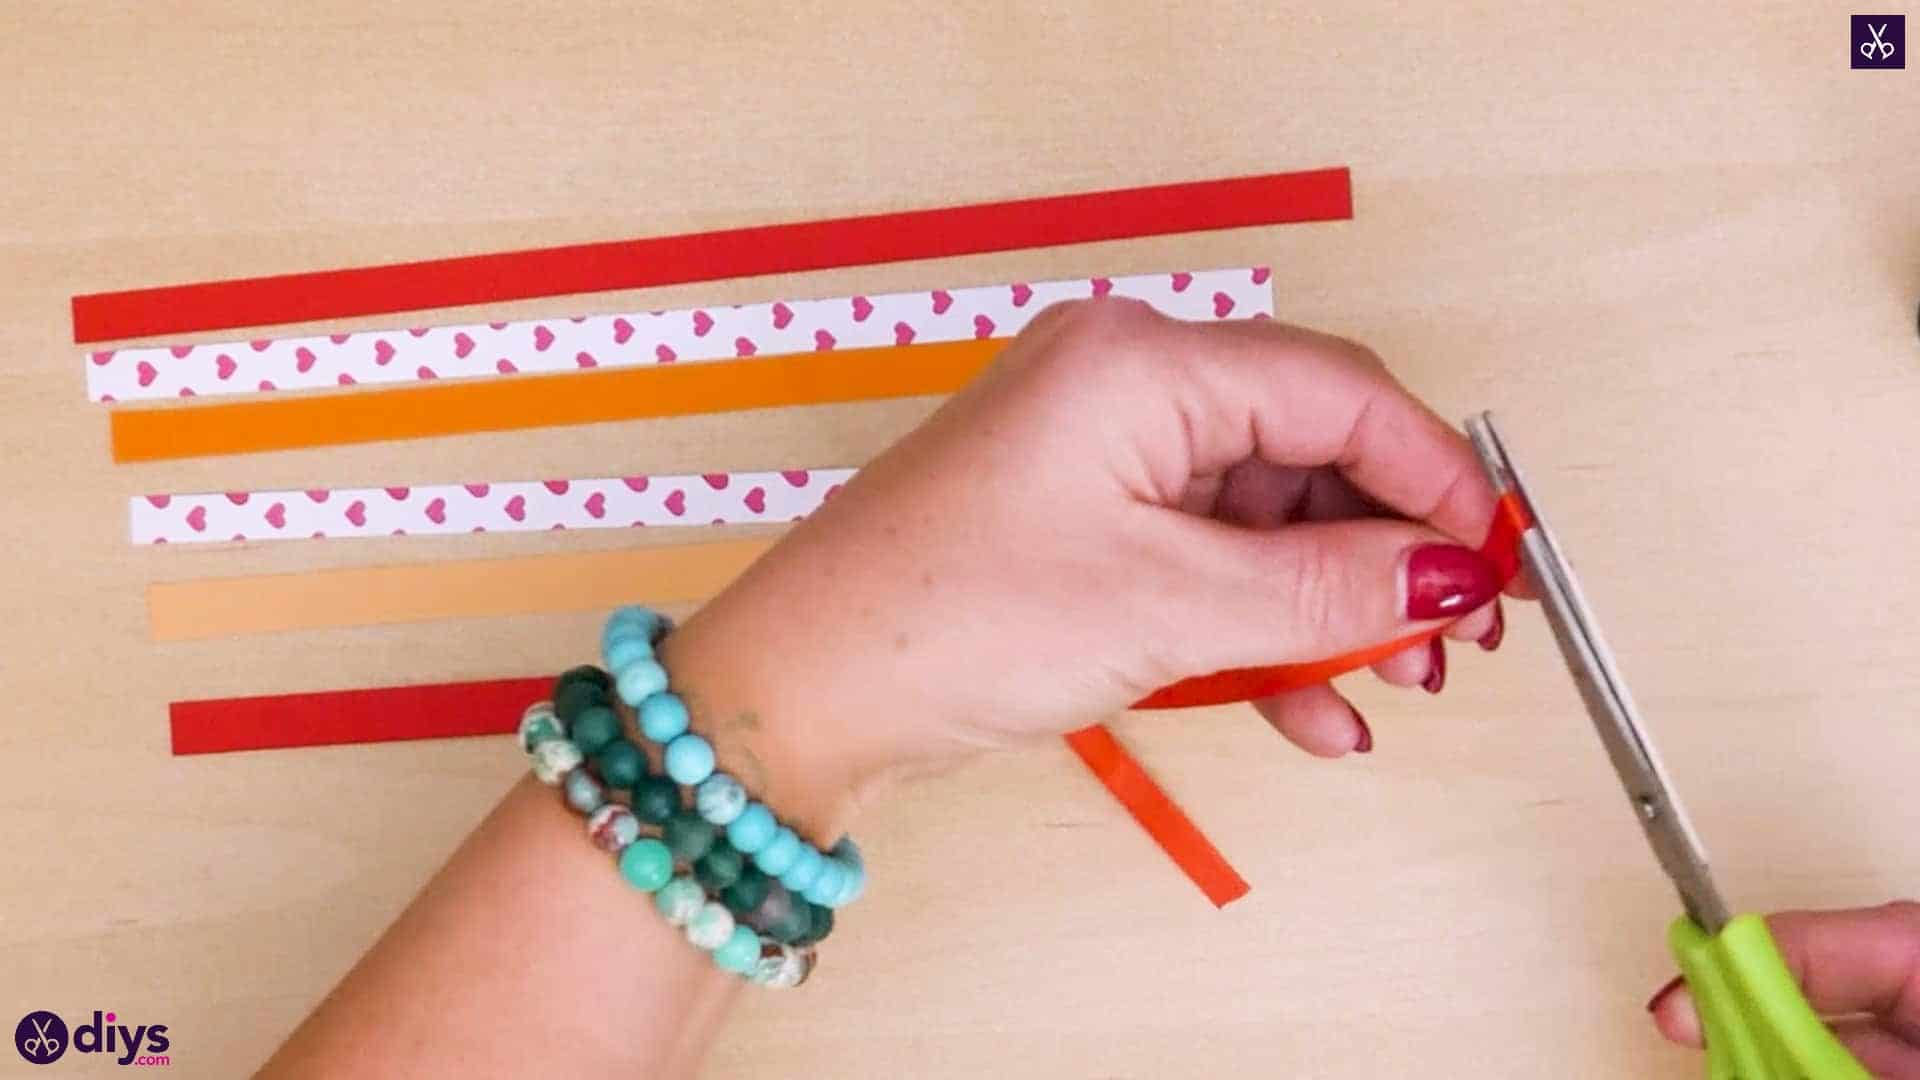 Diy ribbon heart step 4